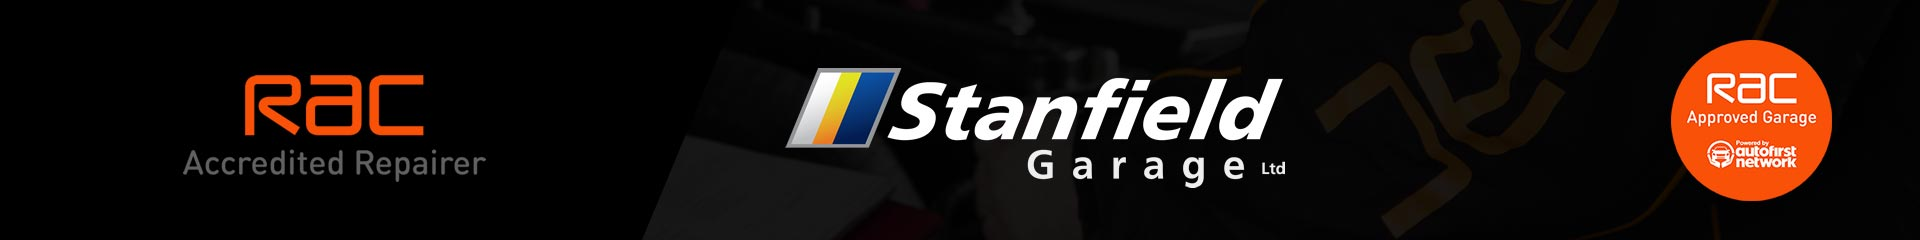 Stanfield Garage are RAC Accredited Repairers